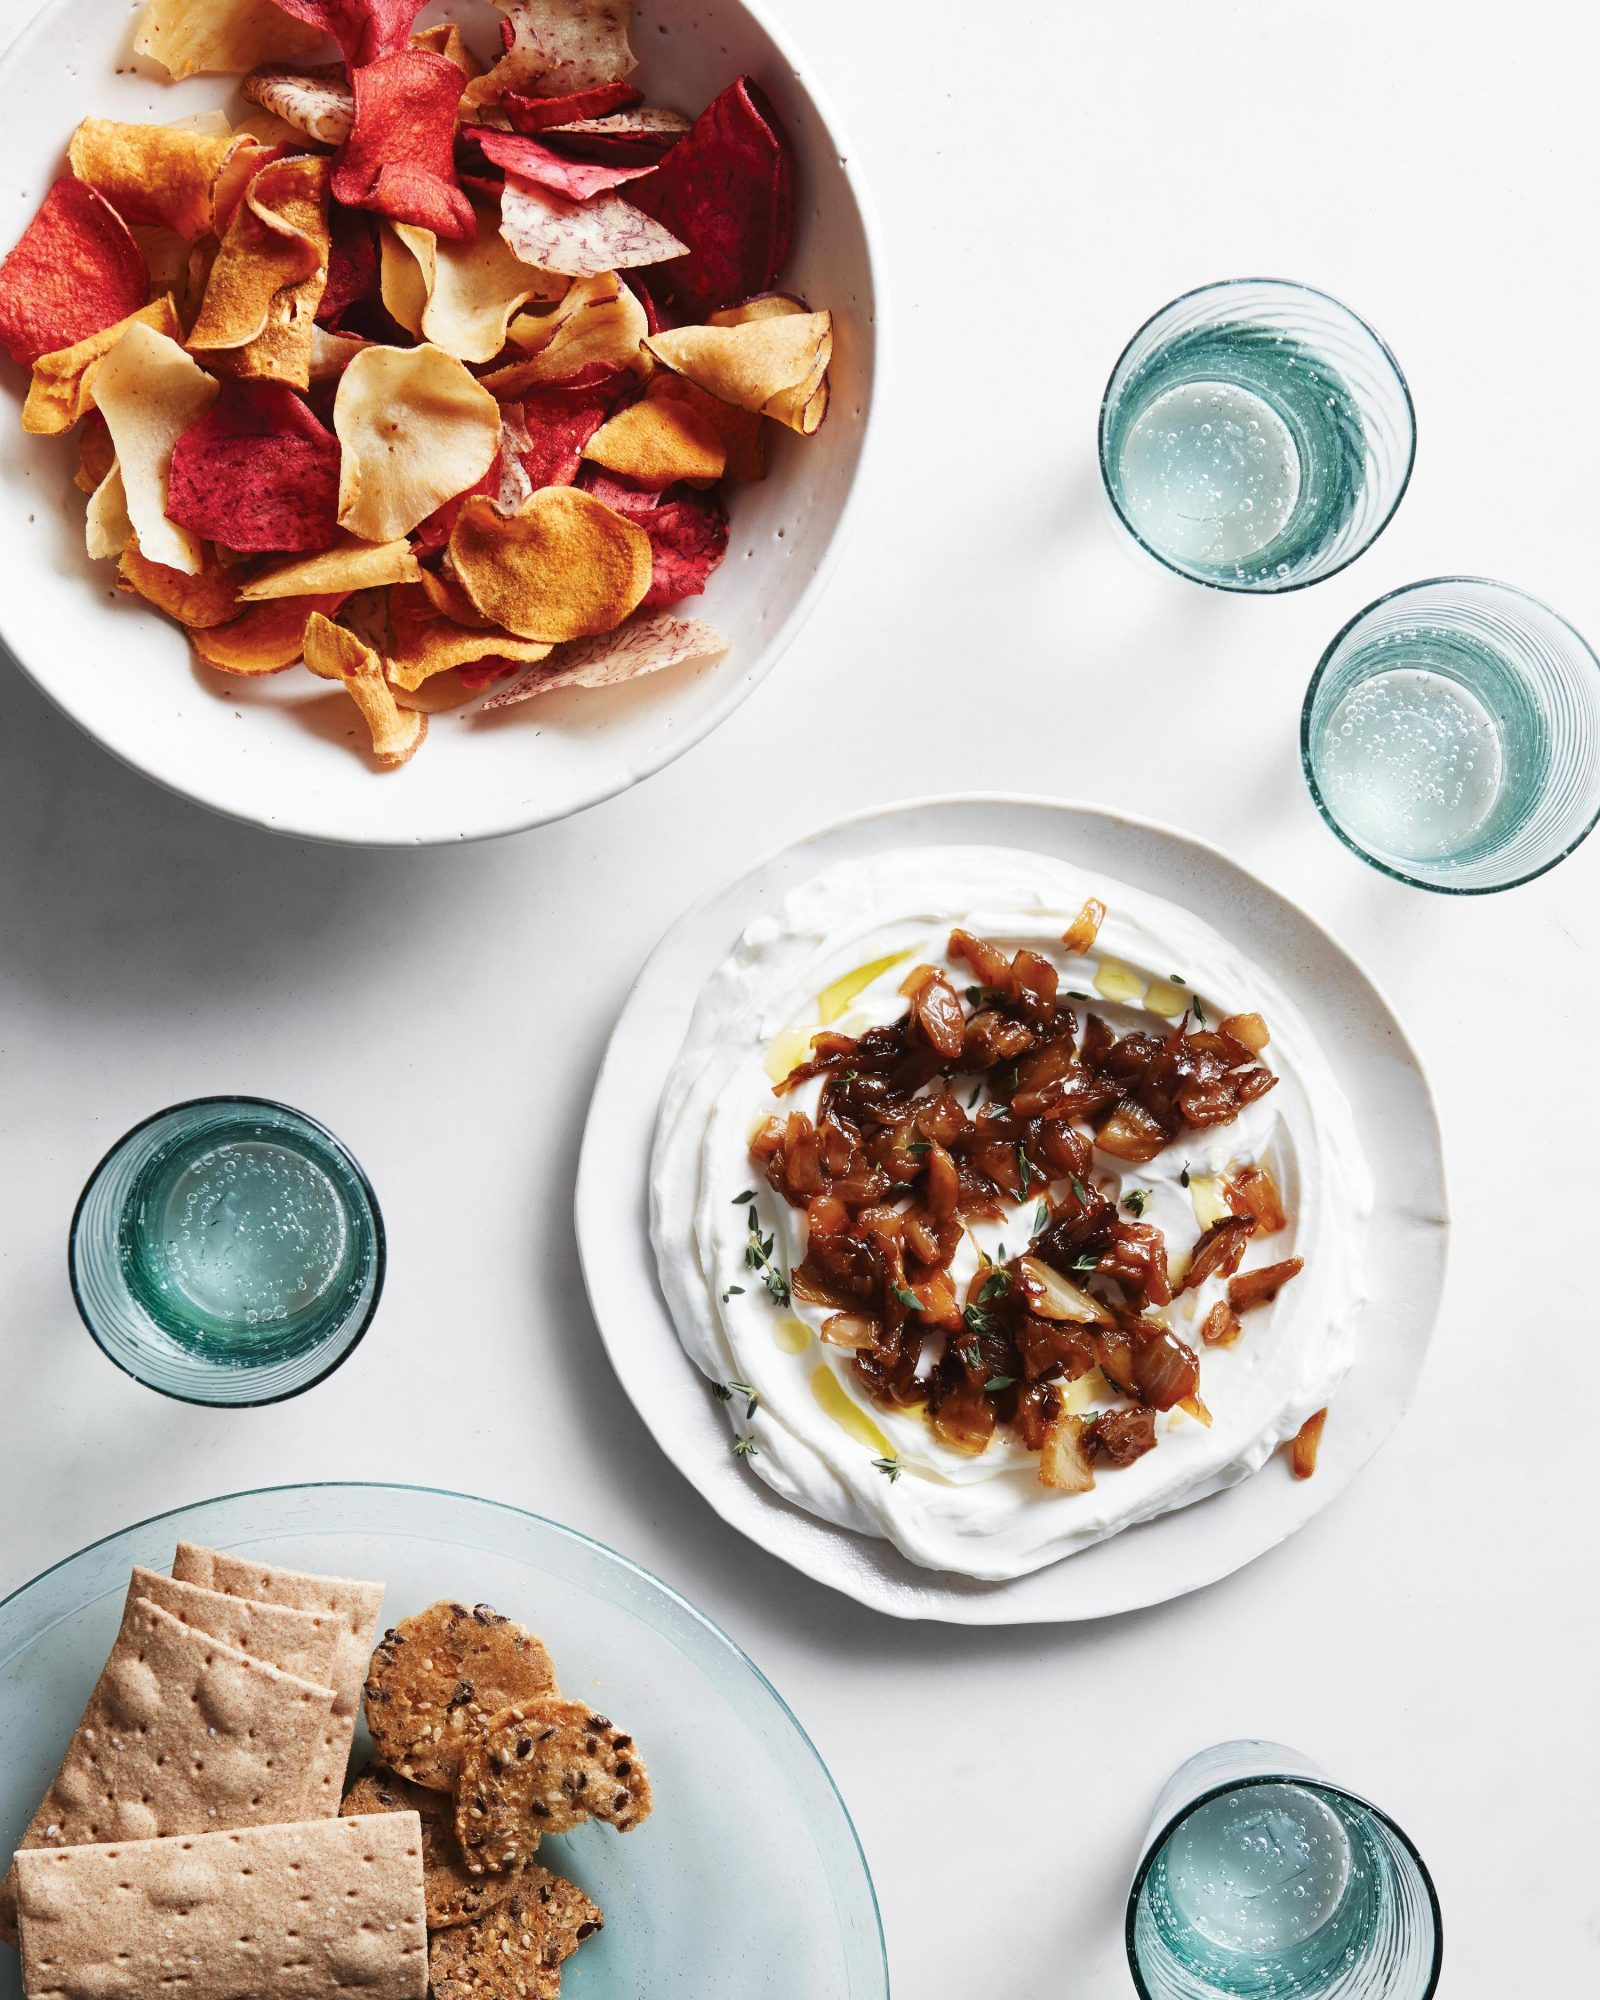 labneh dip with caramelized onions and fennel